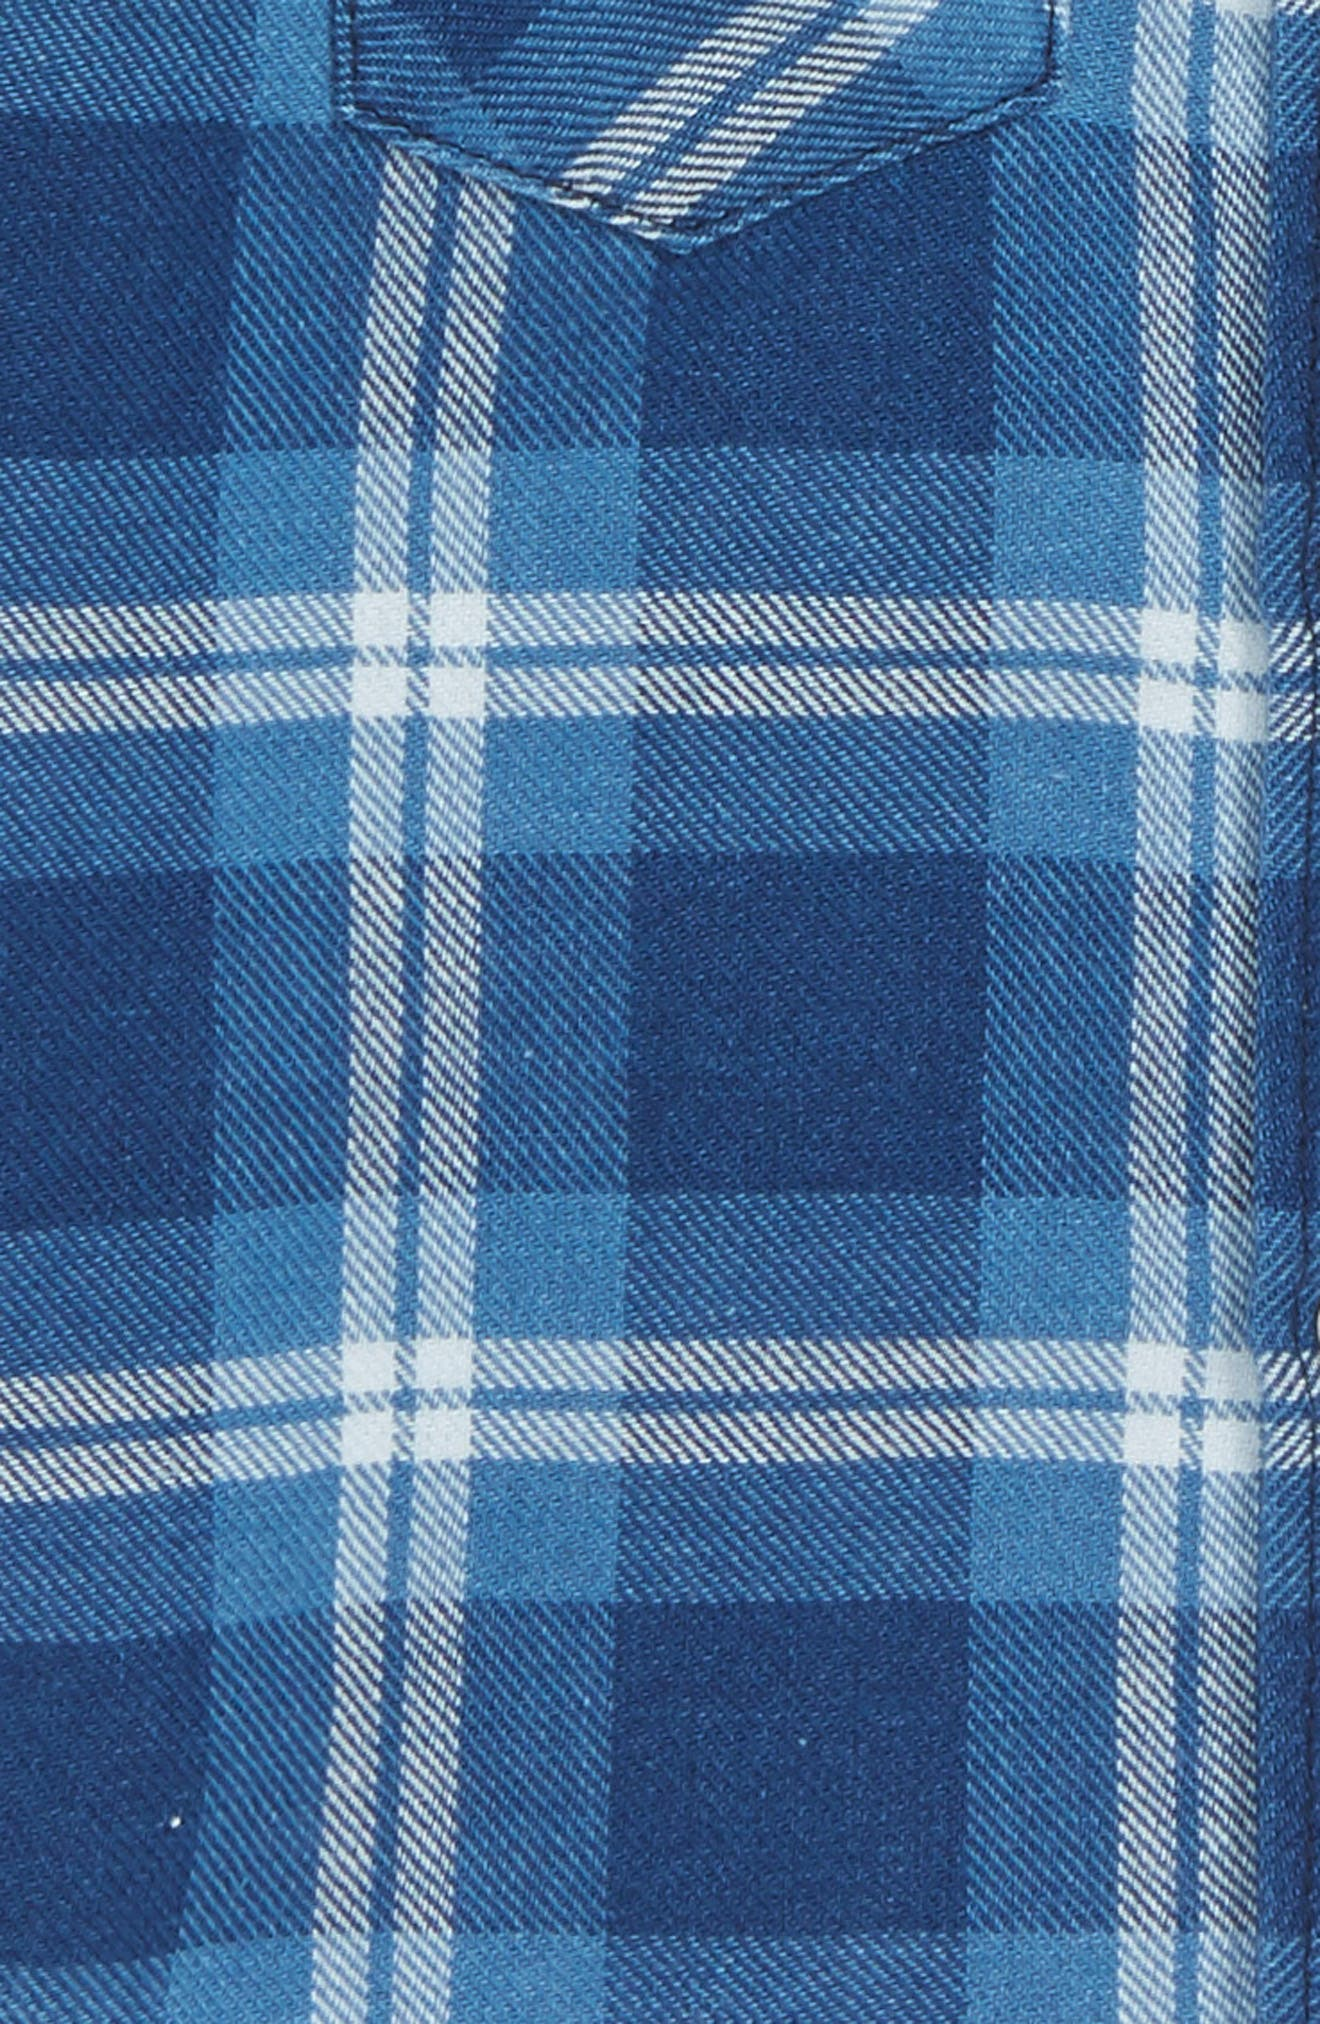 Barstow Plaid Shirt,                             Alternate thumbnail 2, color,                             463